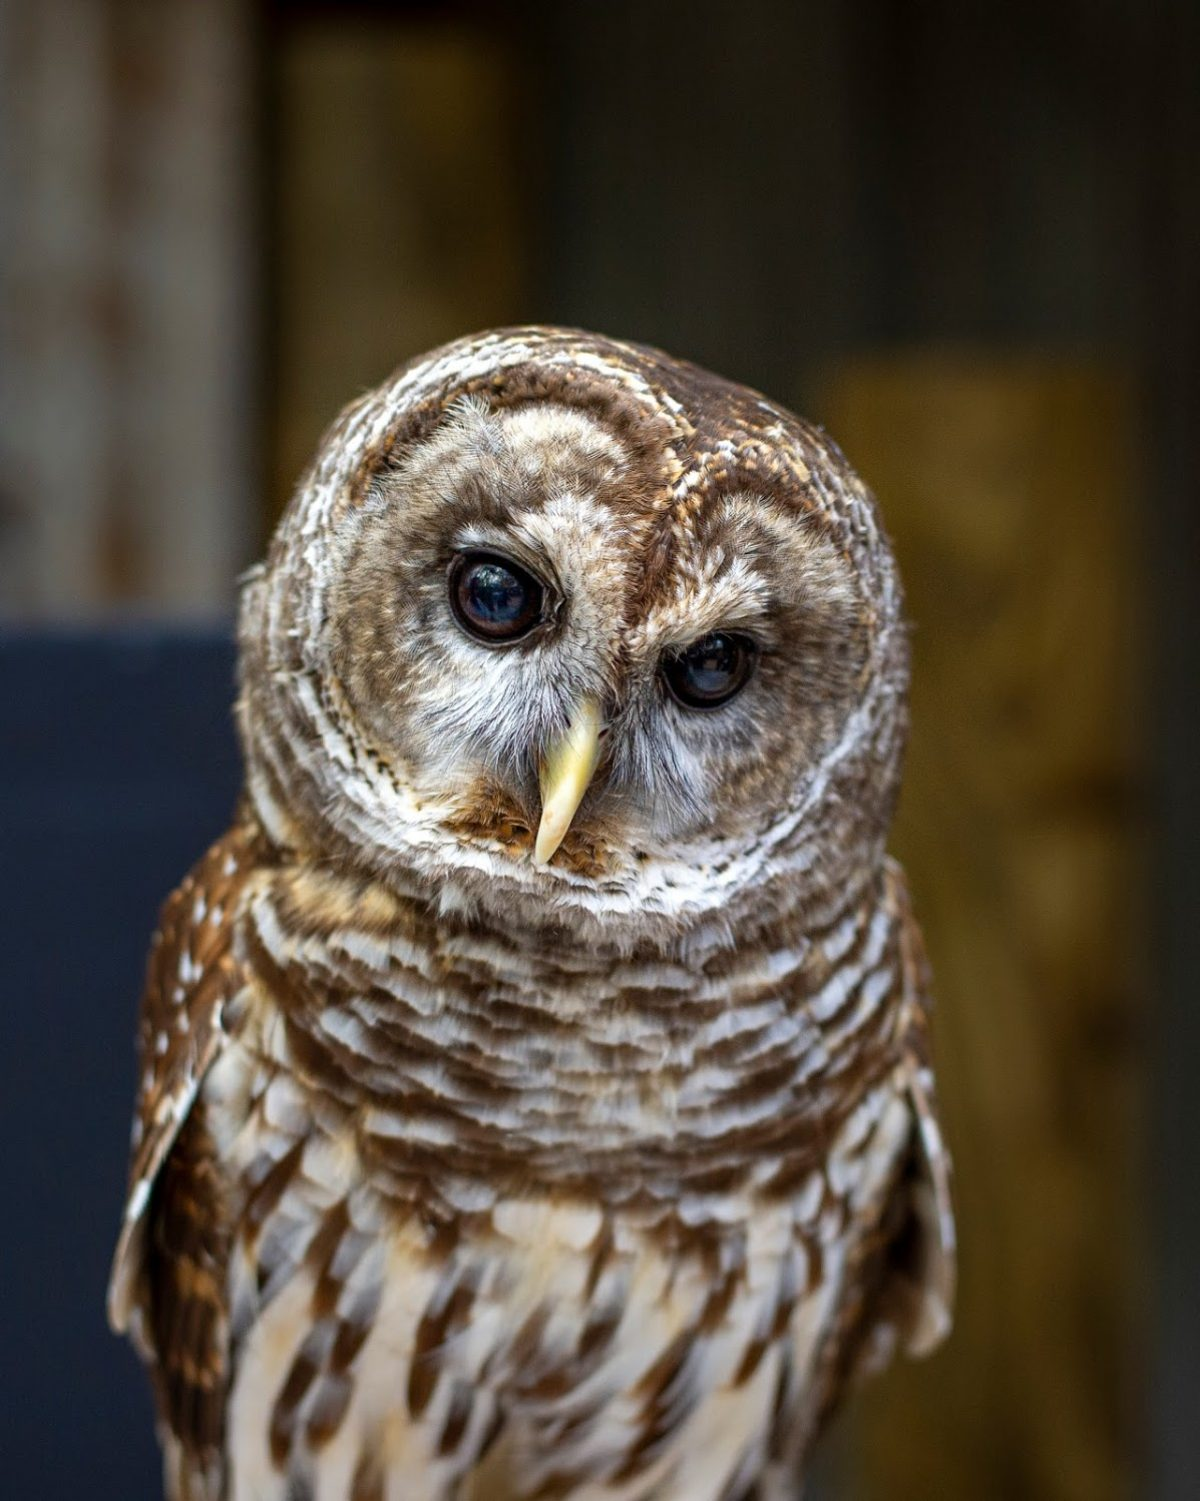 Barred Owl front view